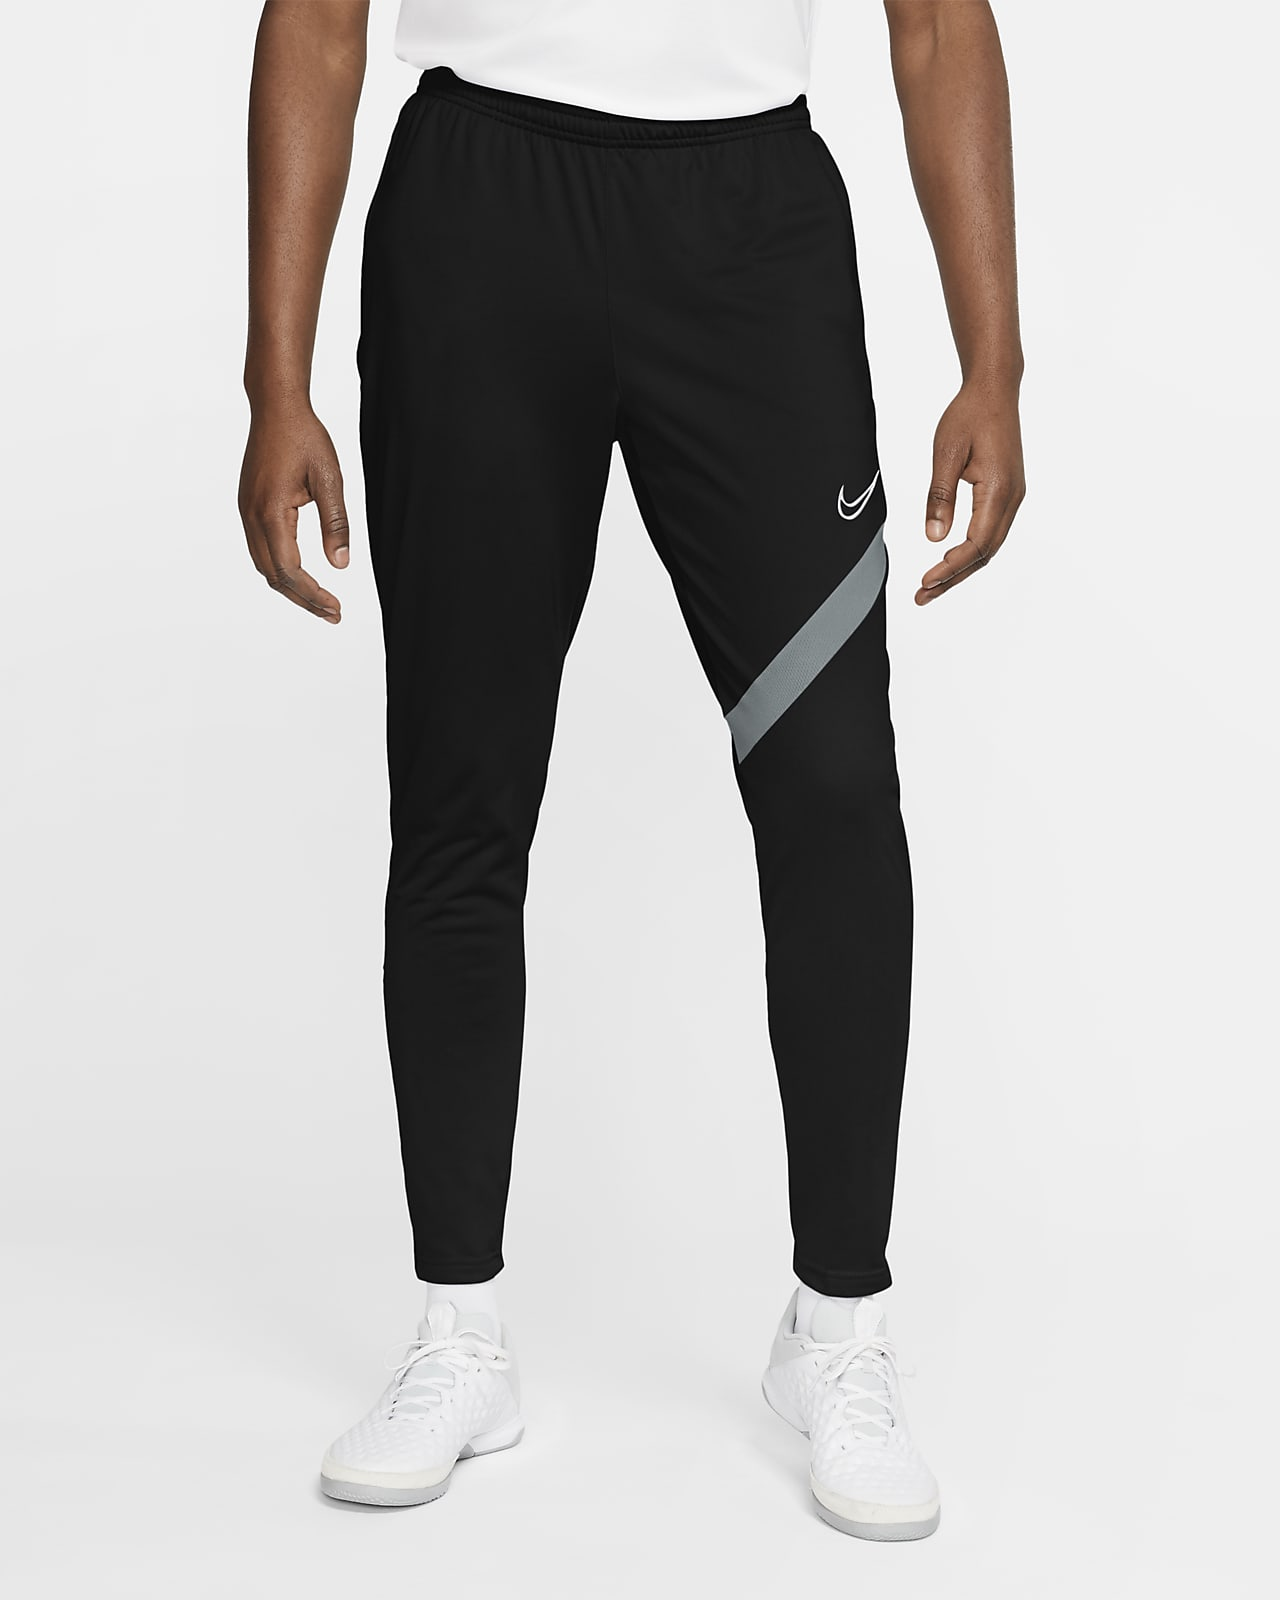 Dormitorio Rico ácido  Nike Dri-FIT Academy Pro Men's Football Pants. Nike LU